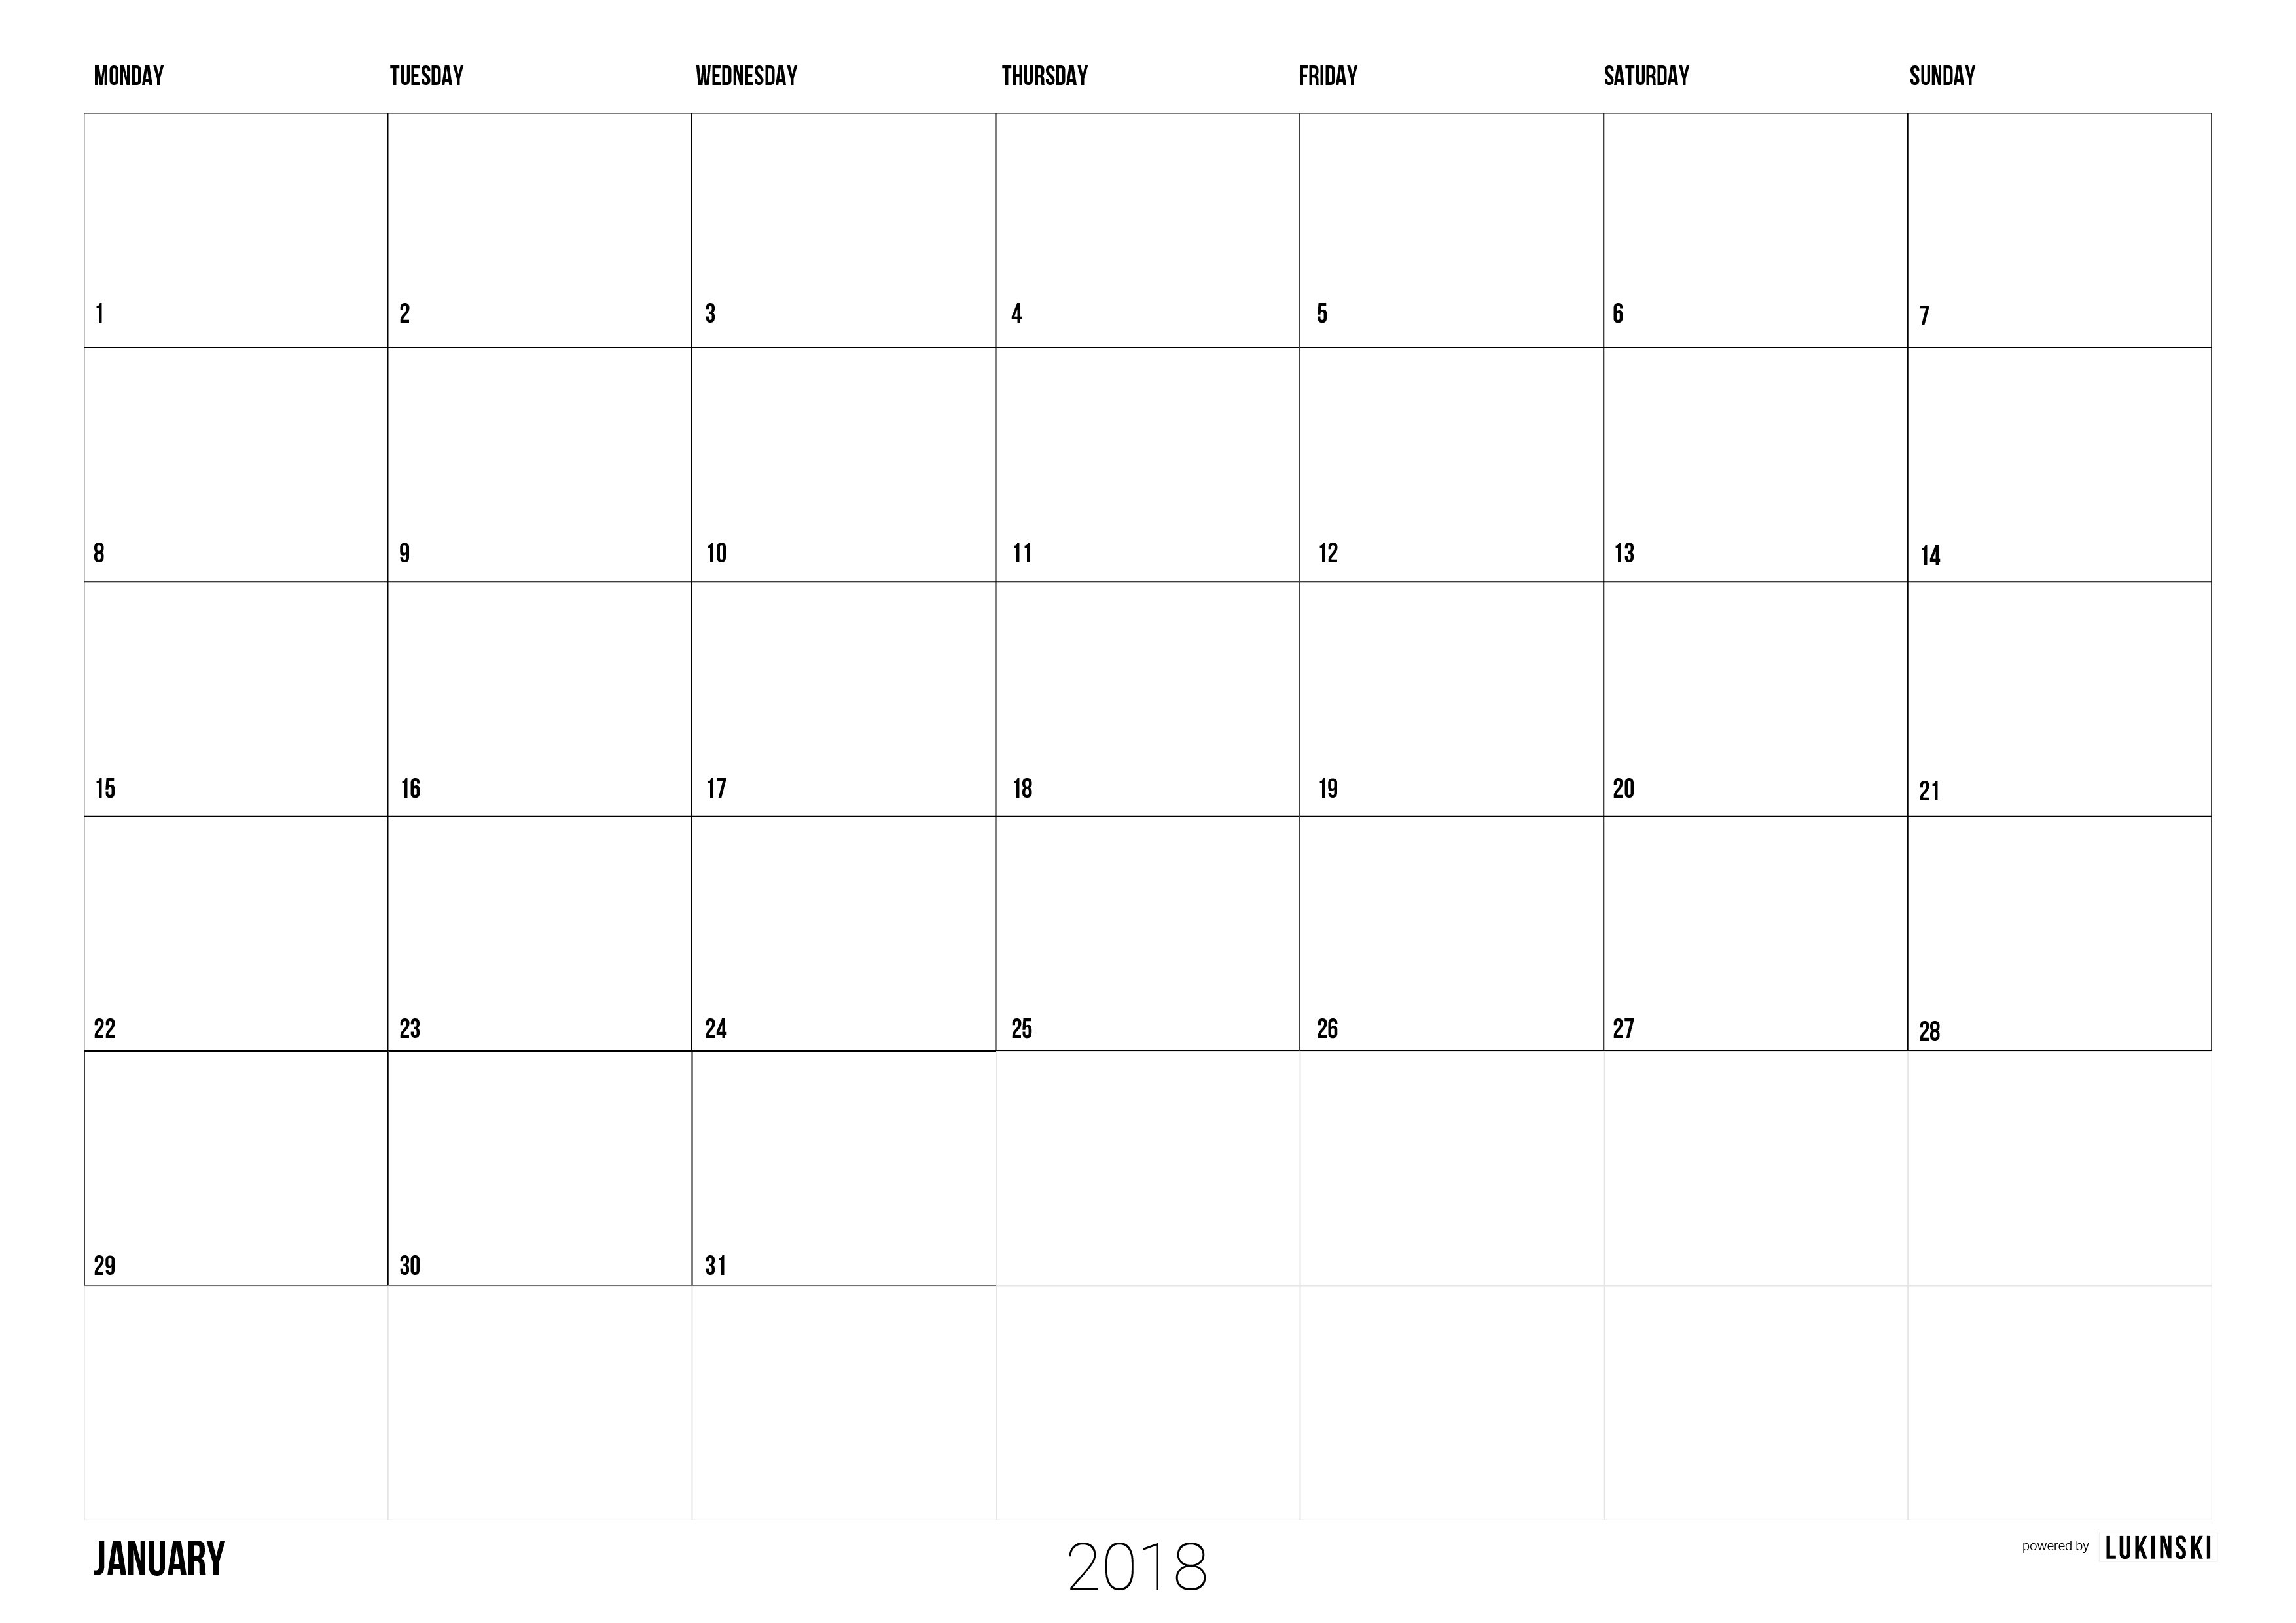 Postkartenkalender Drucken Calendar 2018 to Print Pdf Monthly Calendar Free for Team and Postkartenkalender